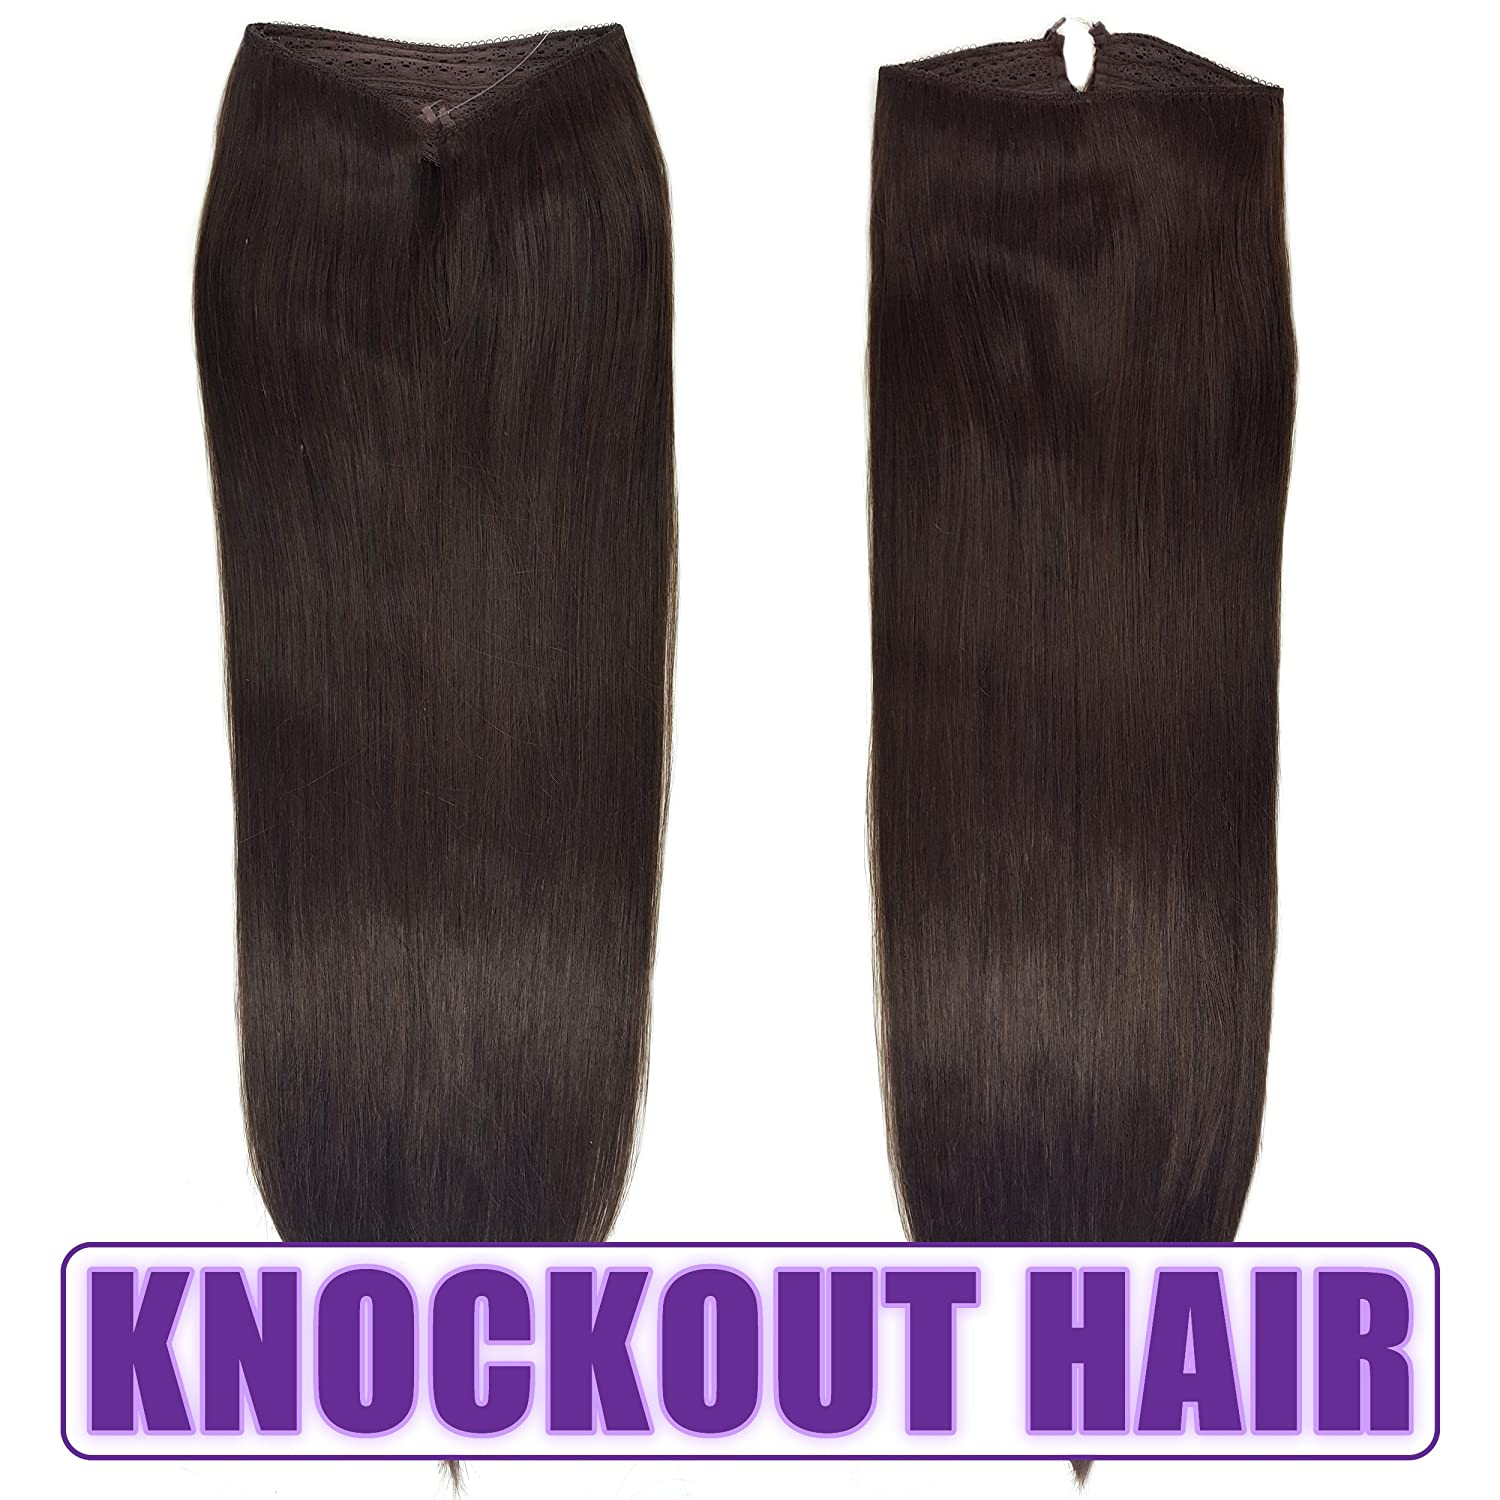 Amazon fits like a halo hair extensions 20 2 no clips amazon fits like a halo hair extensions 20 2 no clips no glue no tape no damage its so easy 100 remy premium couture grade aaaaa human pmusecretfo Image collections